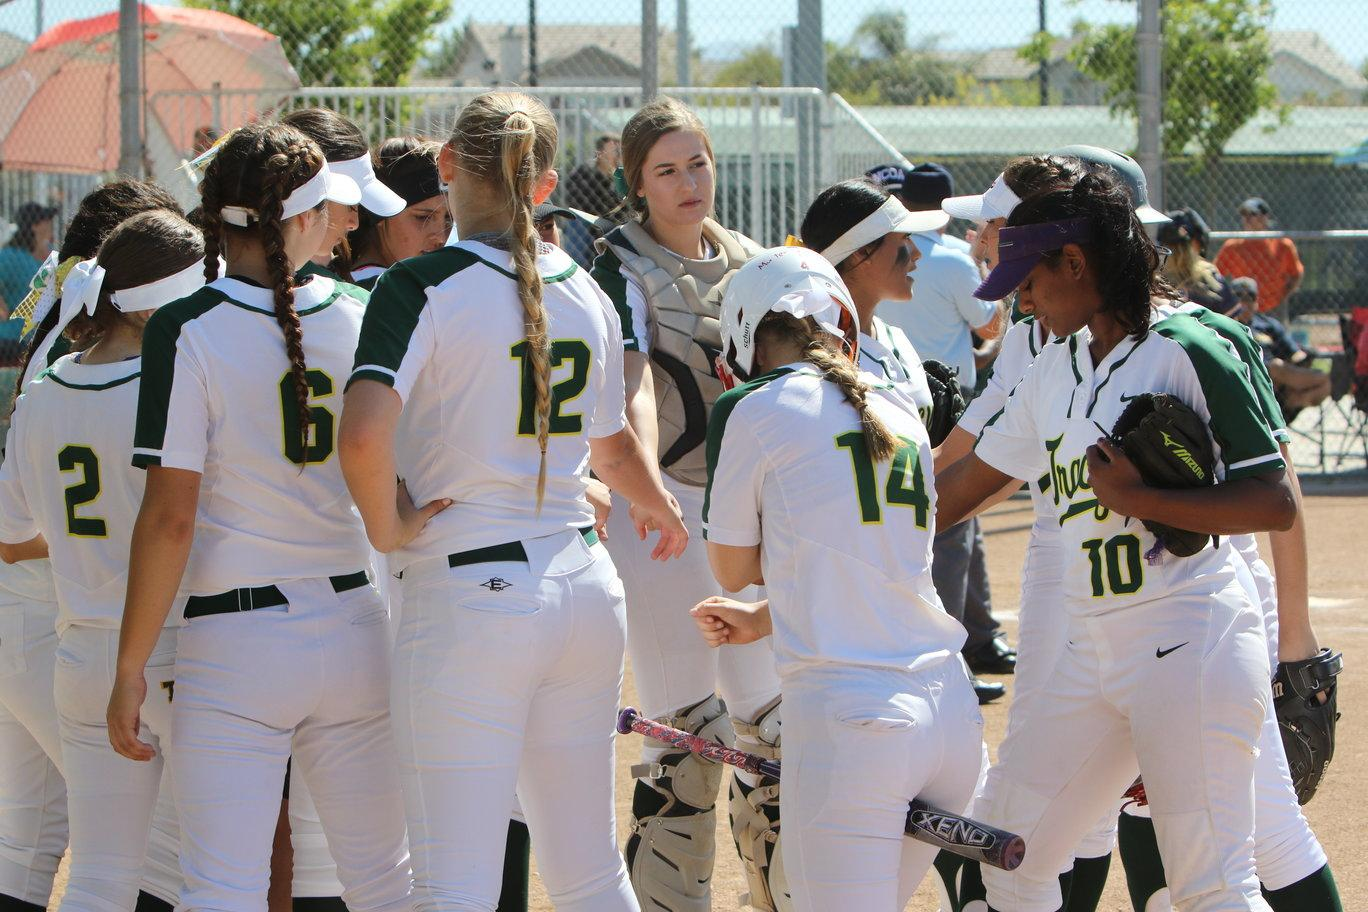 Tracy High softball team getting a team break before the inning starts.